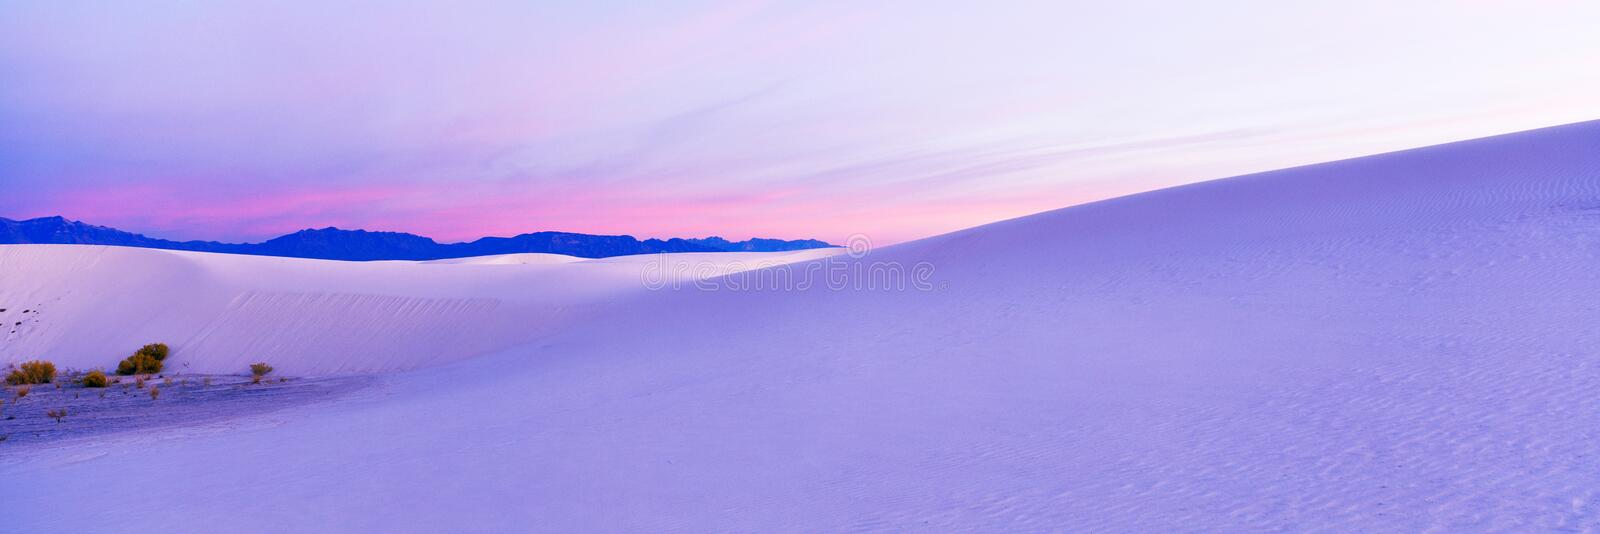 White Sands Stock Photos